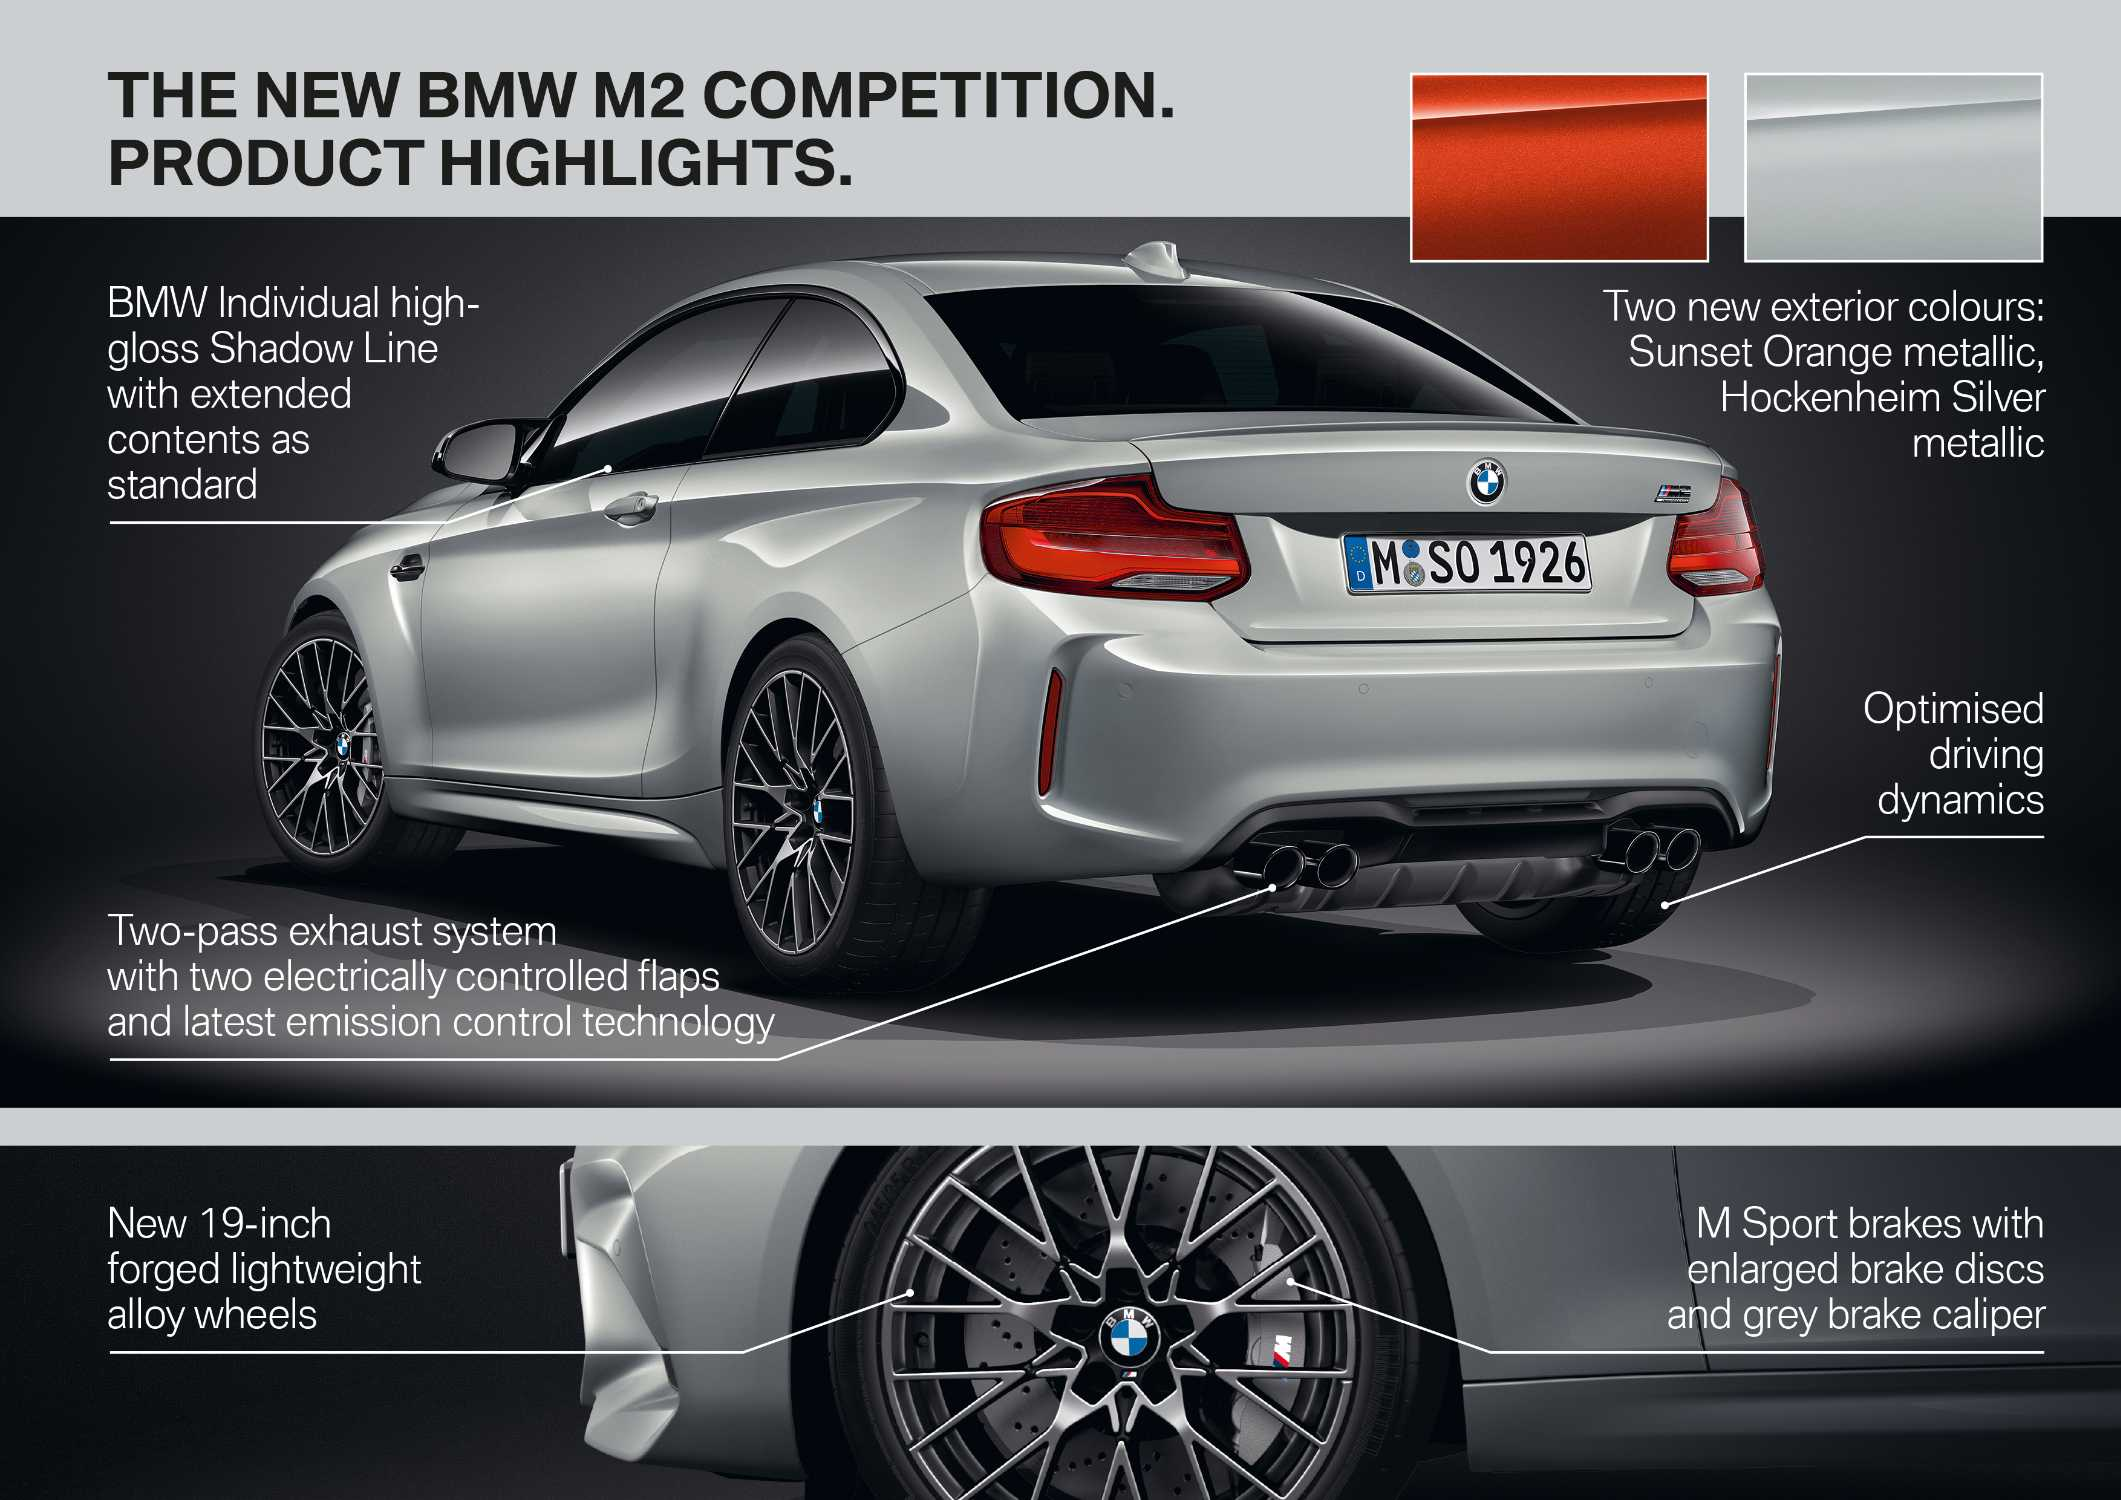 The new BMW M2 Competition (04/2018).